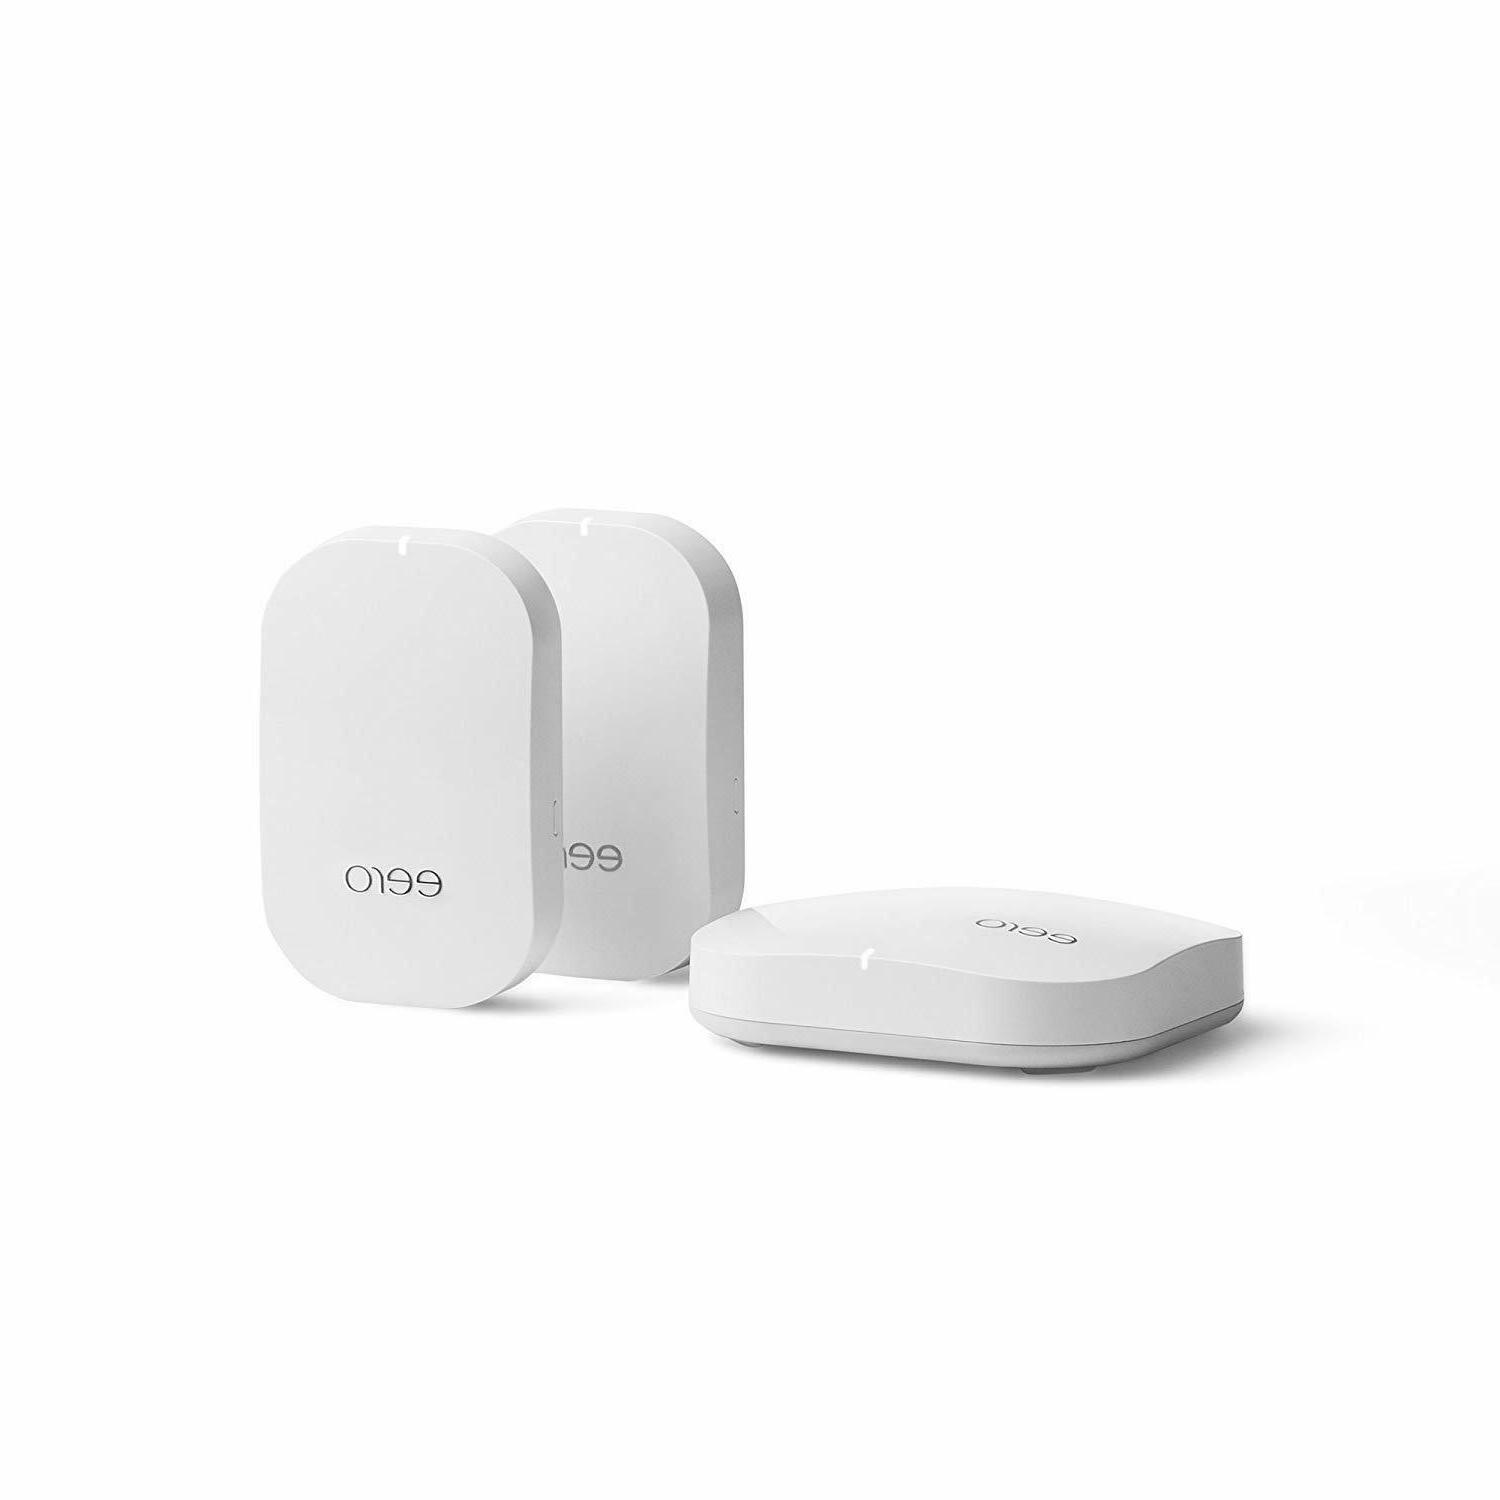 new home wifi system 1 2 beacon